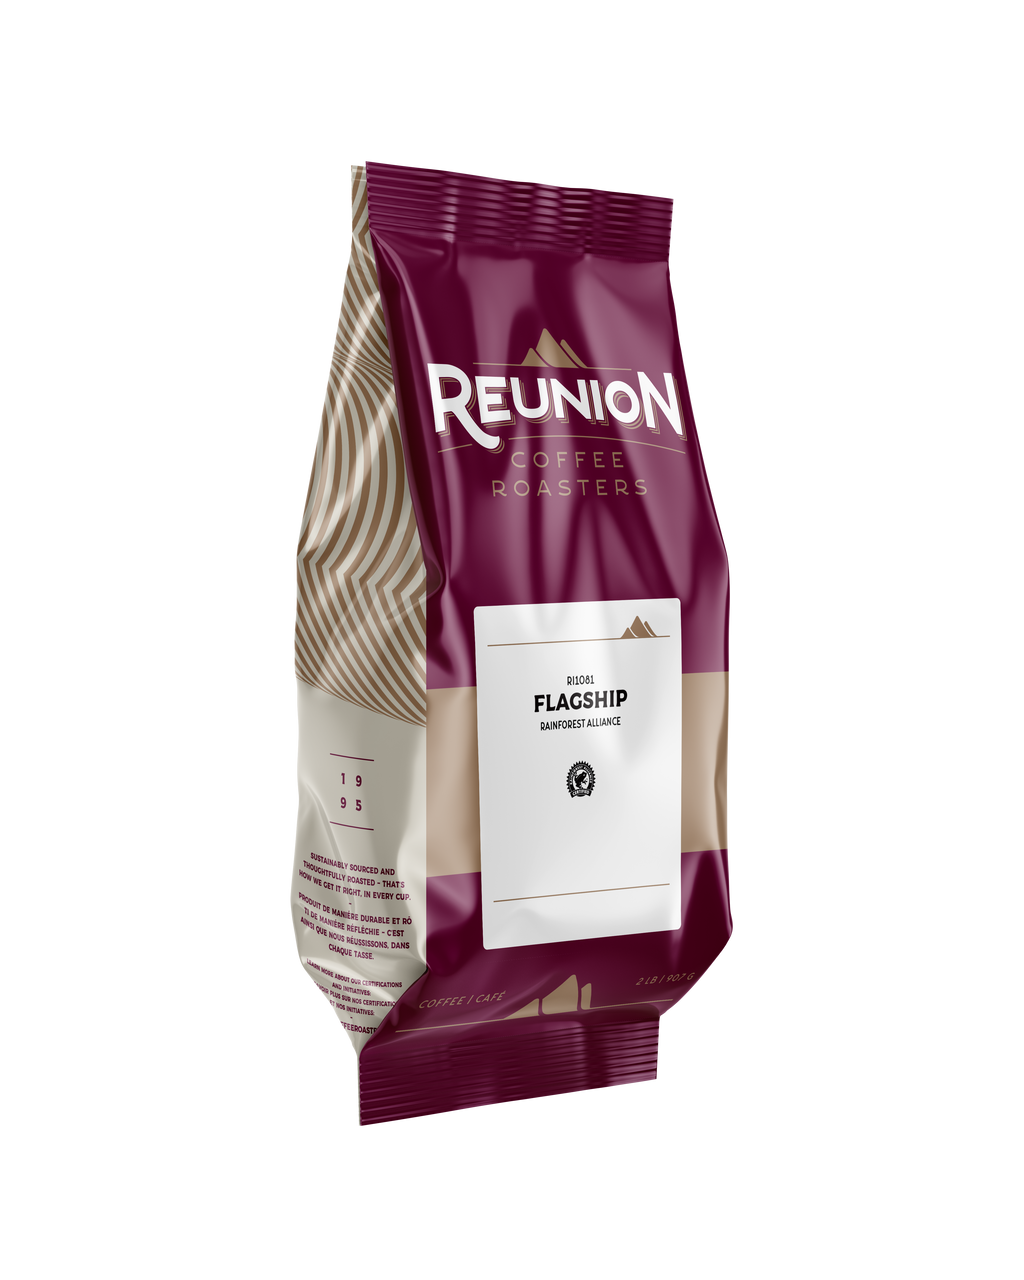 Reunion Flagship Whole Bean 2lbs